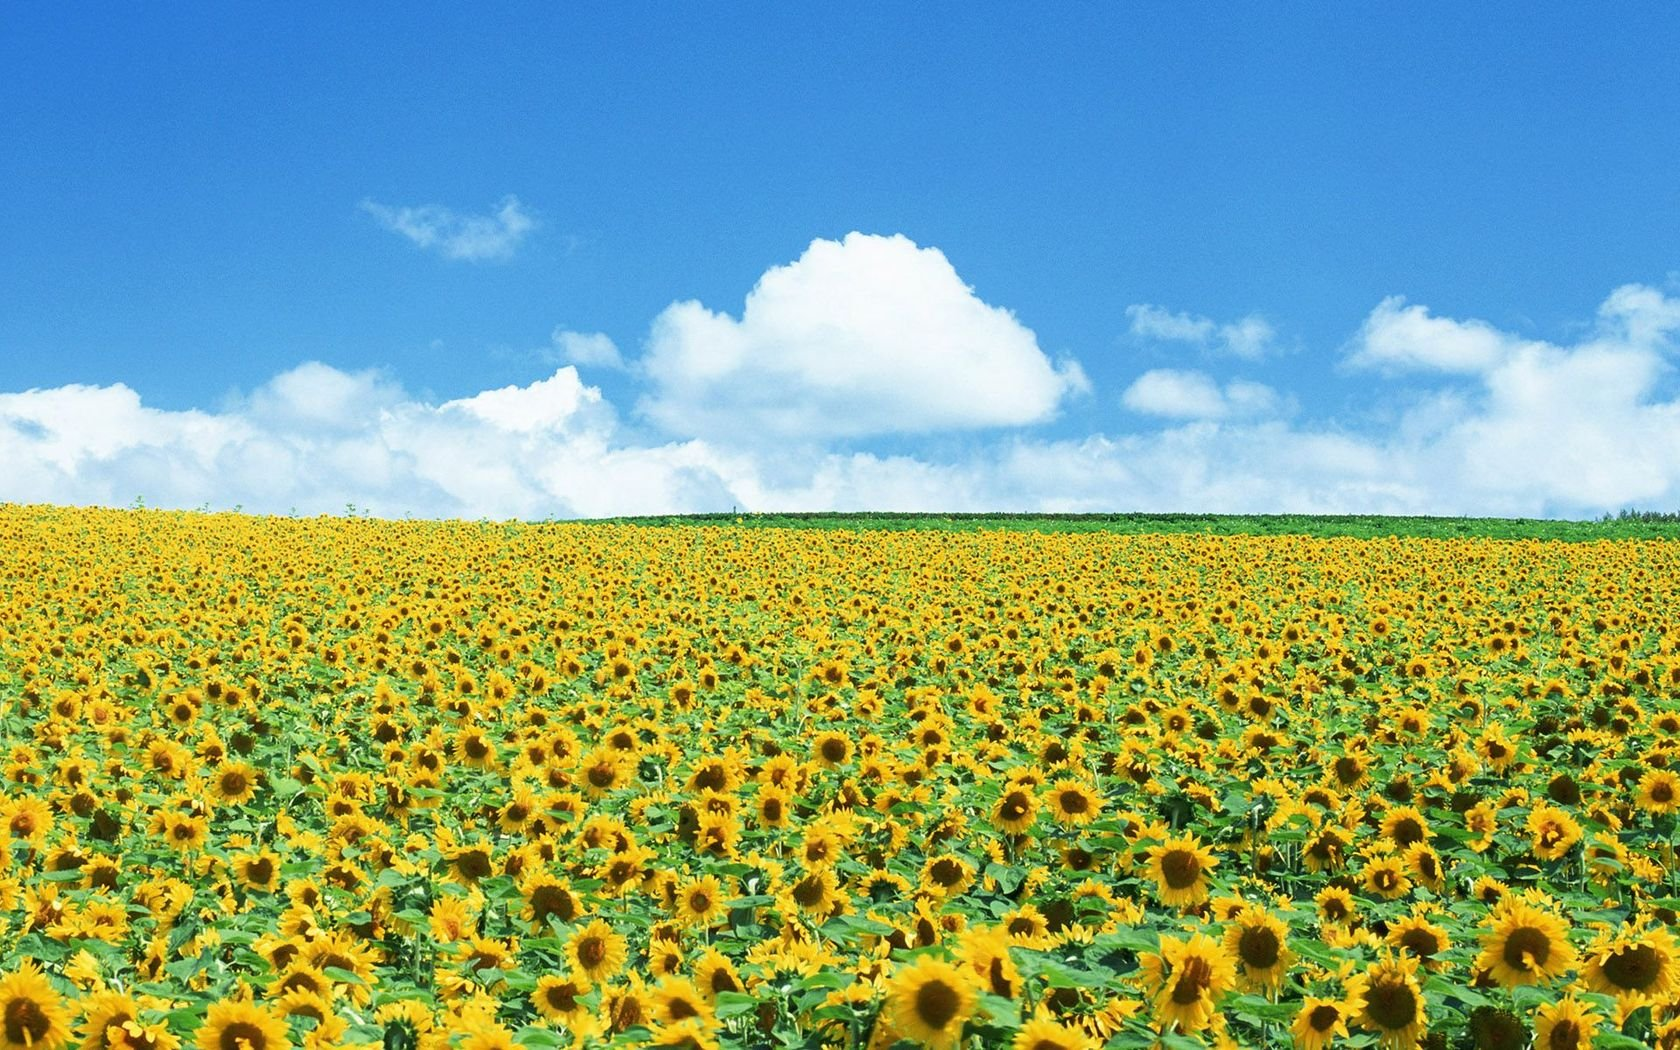 Field Of Sunflowers Wallpaper: Field Of Sunflowers Wallpaper